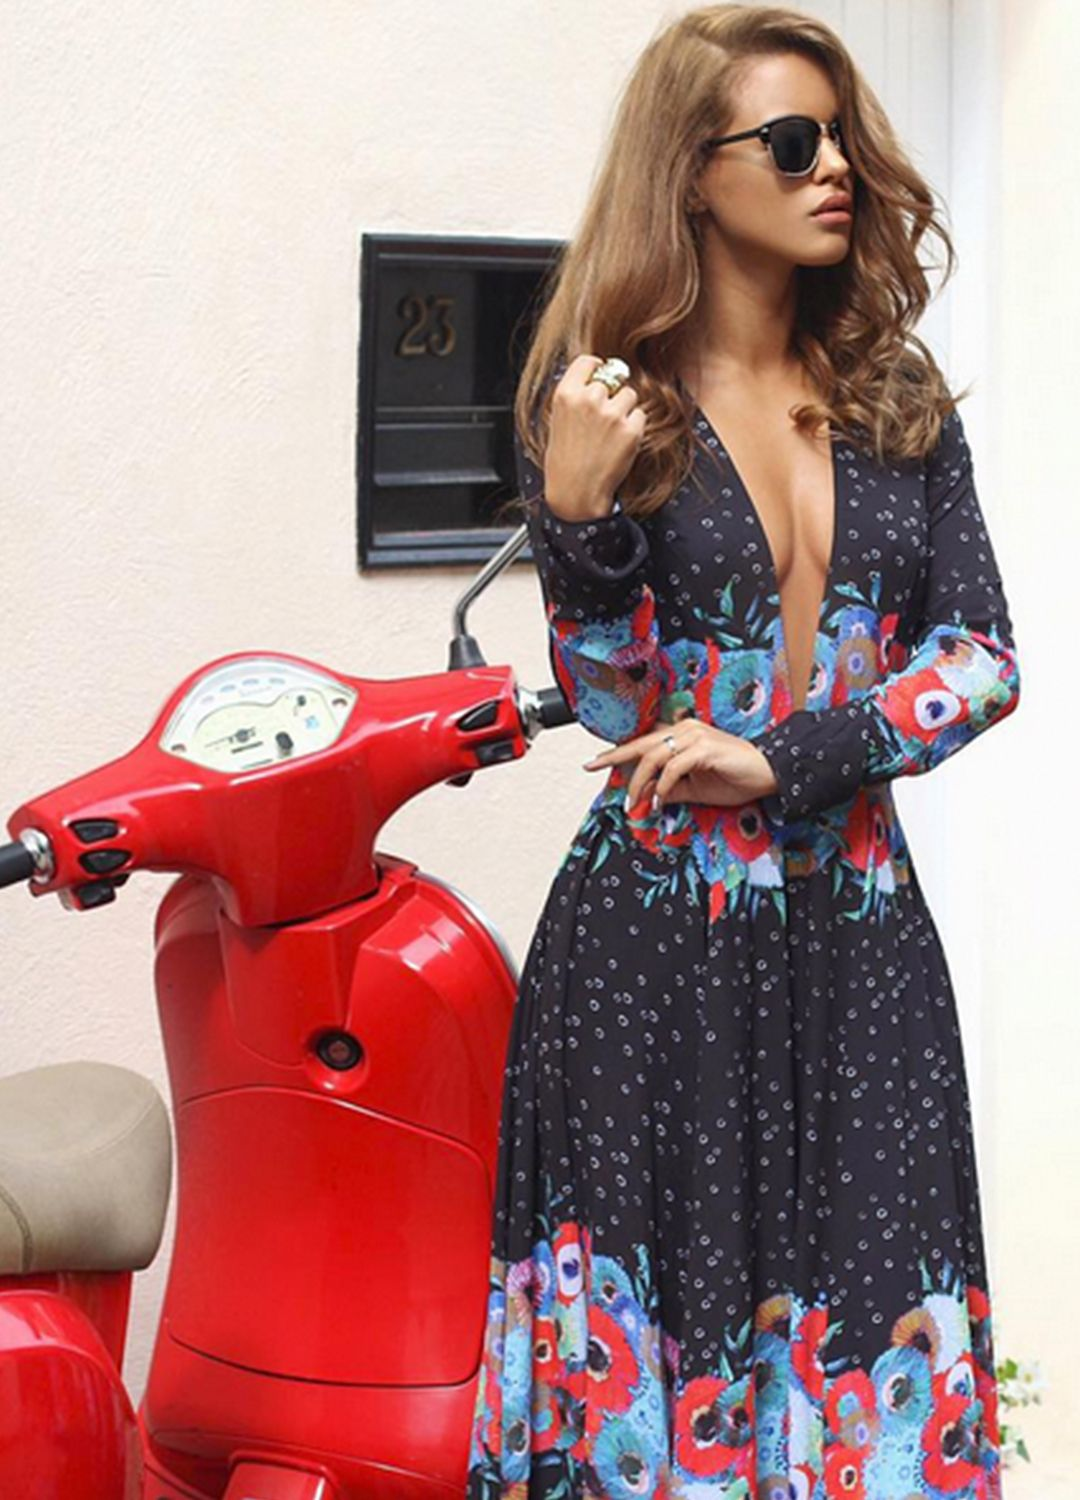 #FameBabe Nada Adelle in the About You dress